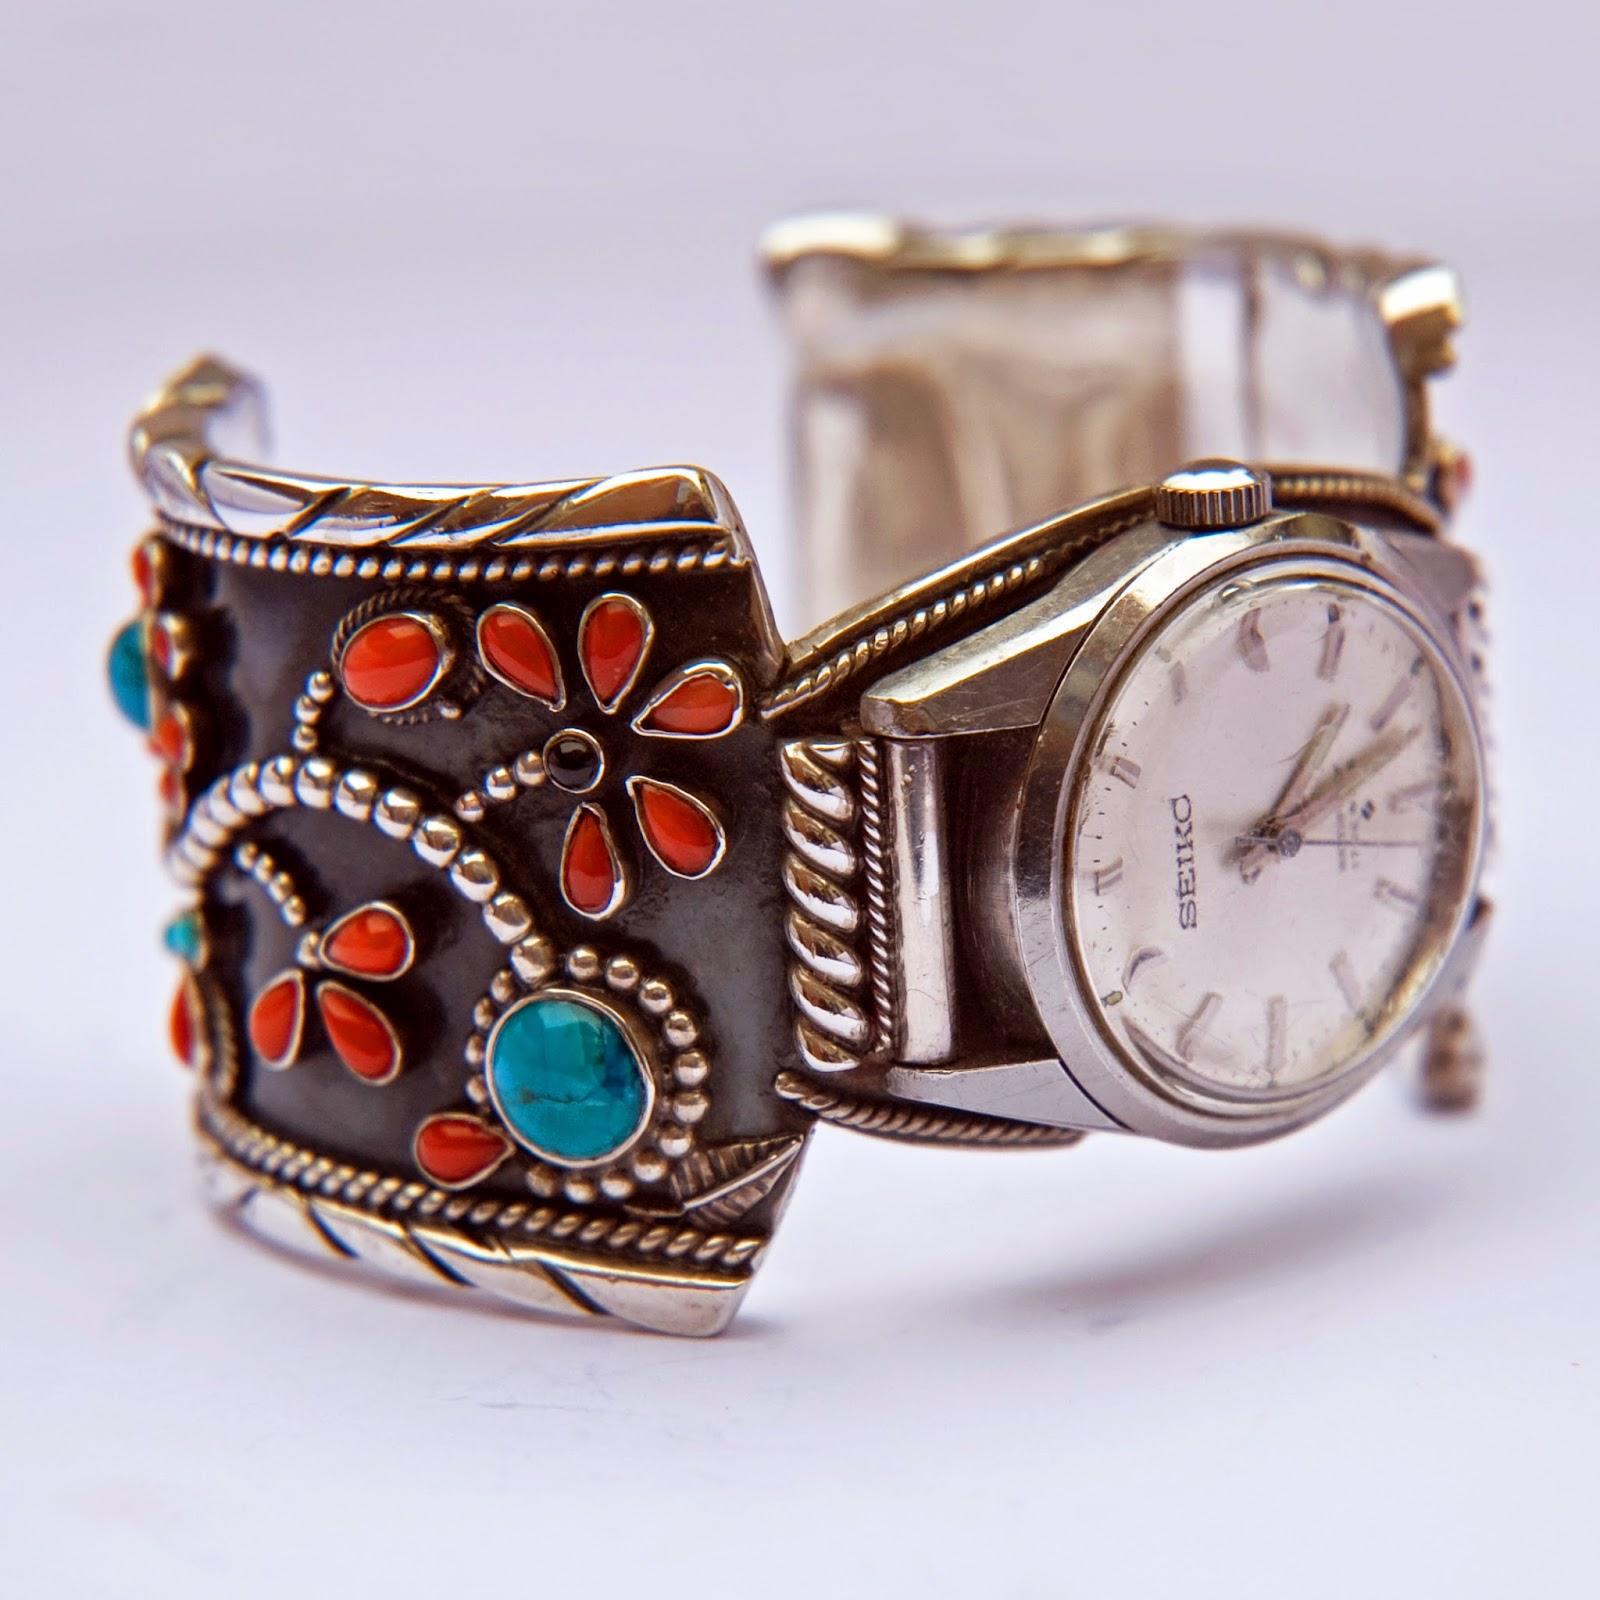 Native American wristwatch band